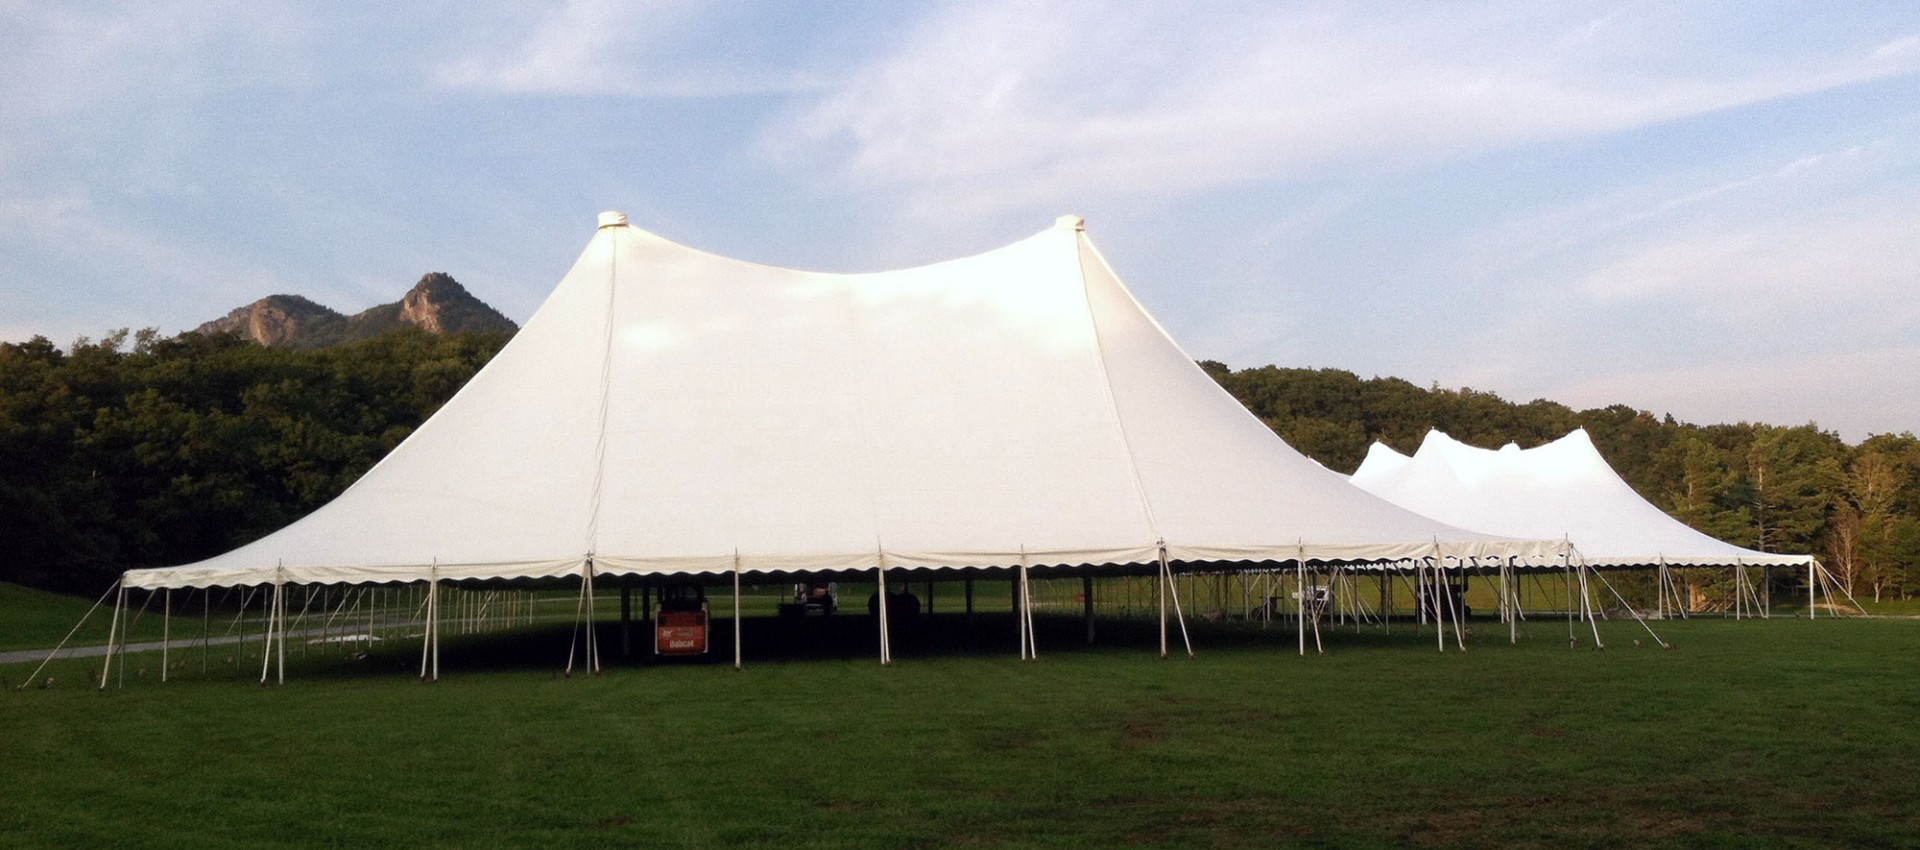 Large white awnings and tents for rent